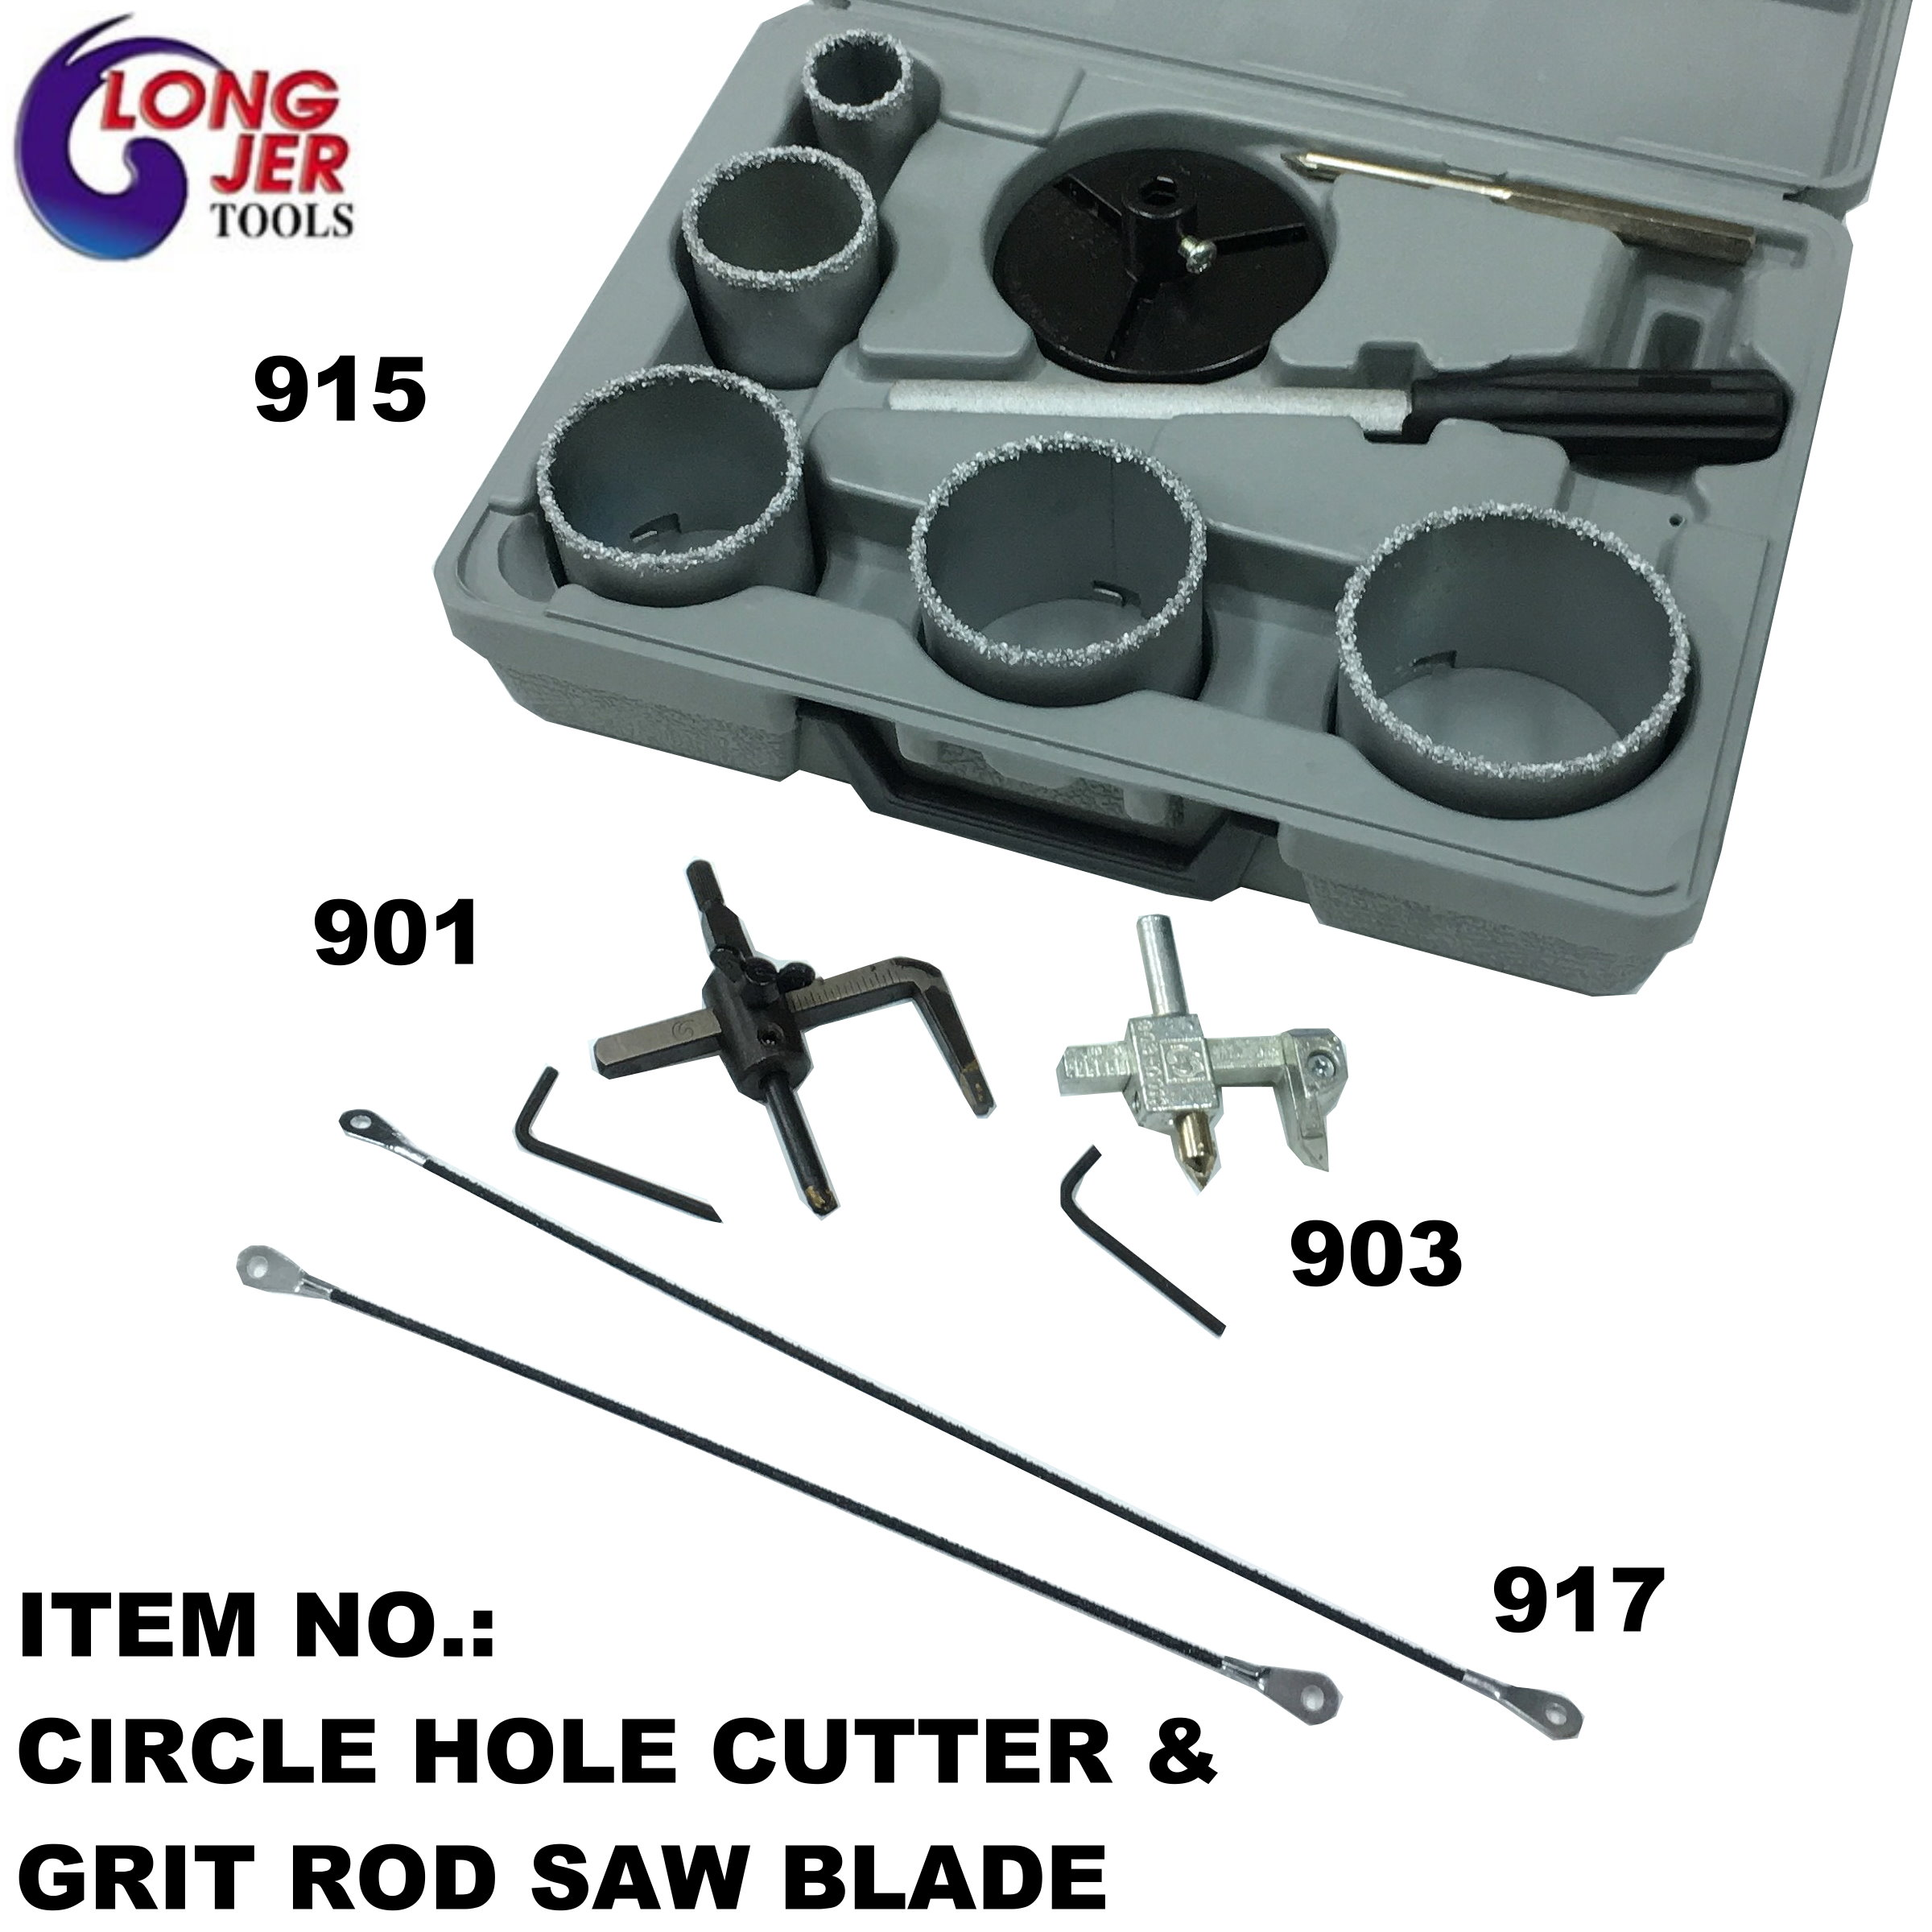 CIRCLE HOLE CUTTER & GRIT ROD SAW BLADE